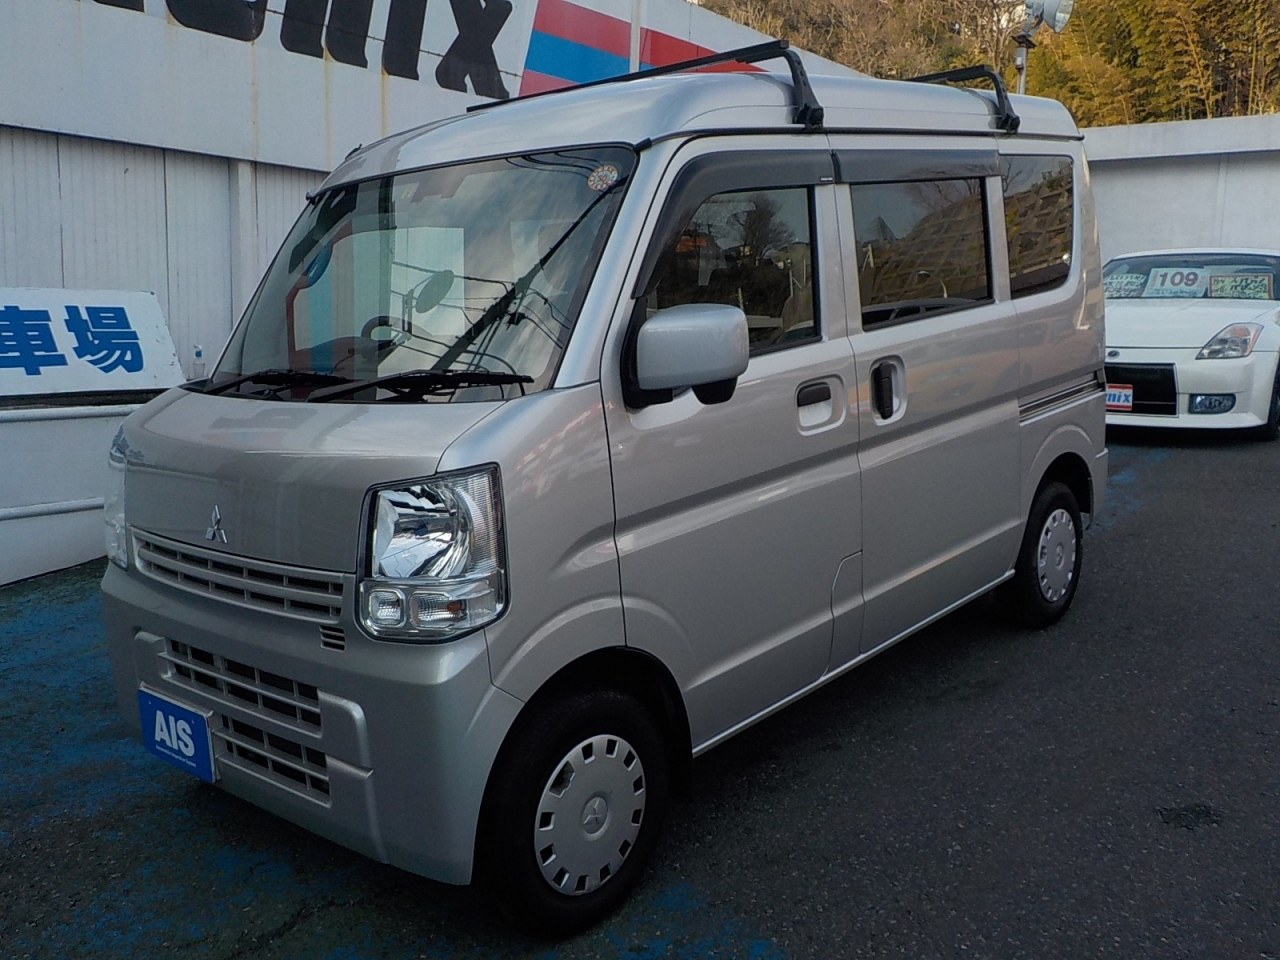 Buy used MITSUBISHI MINICAB at Japanese auctions